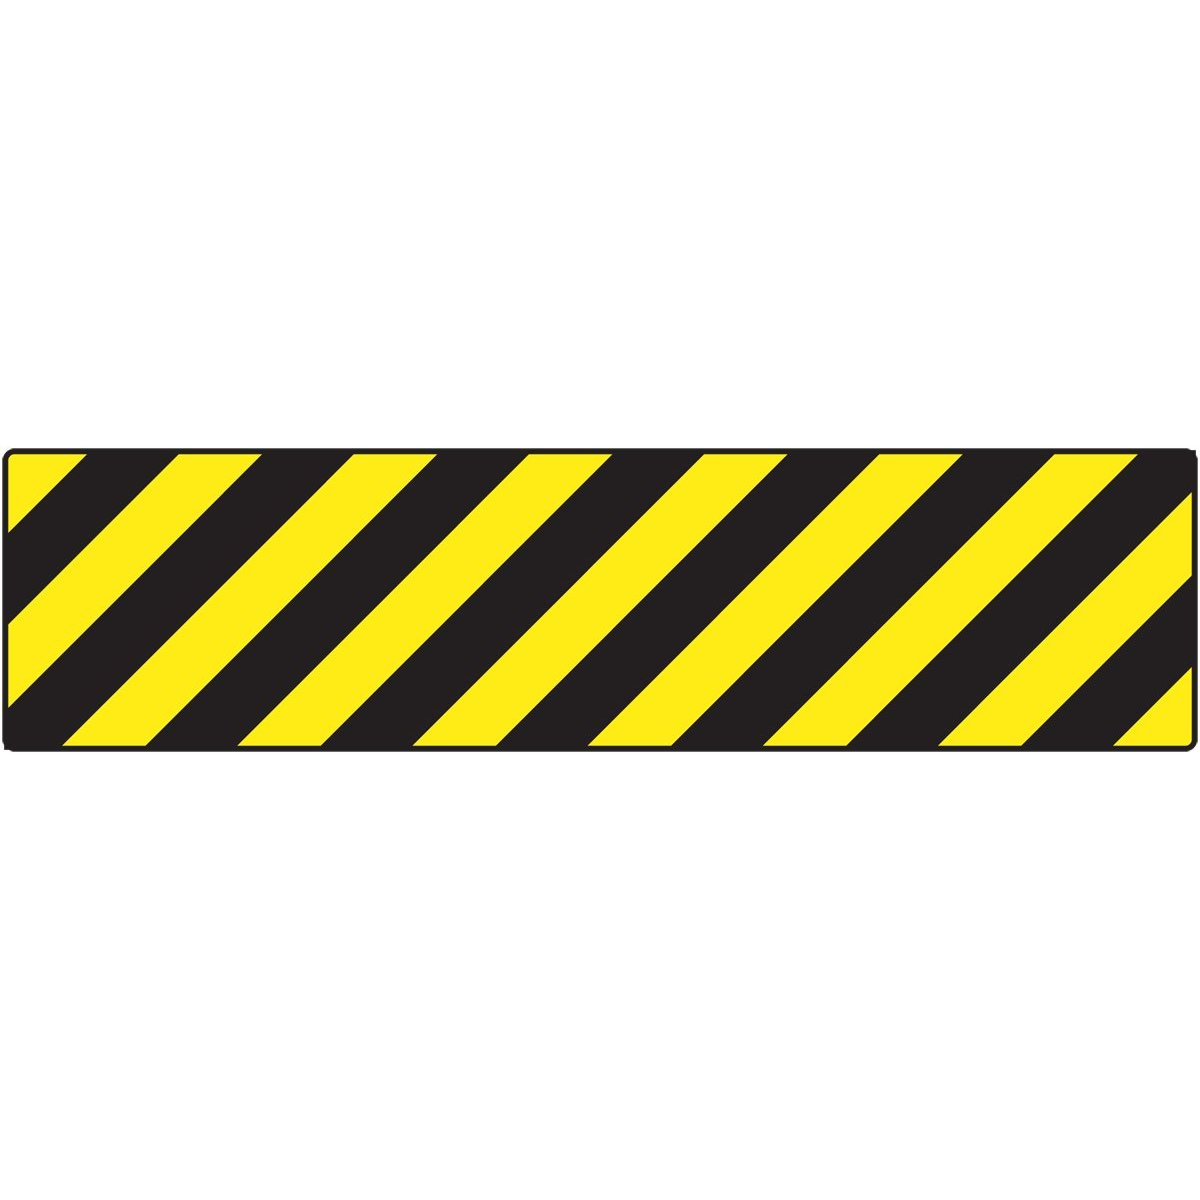 Construction Tape Clip Art Free